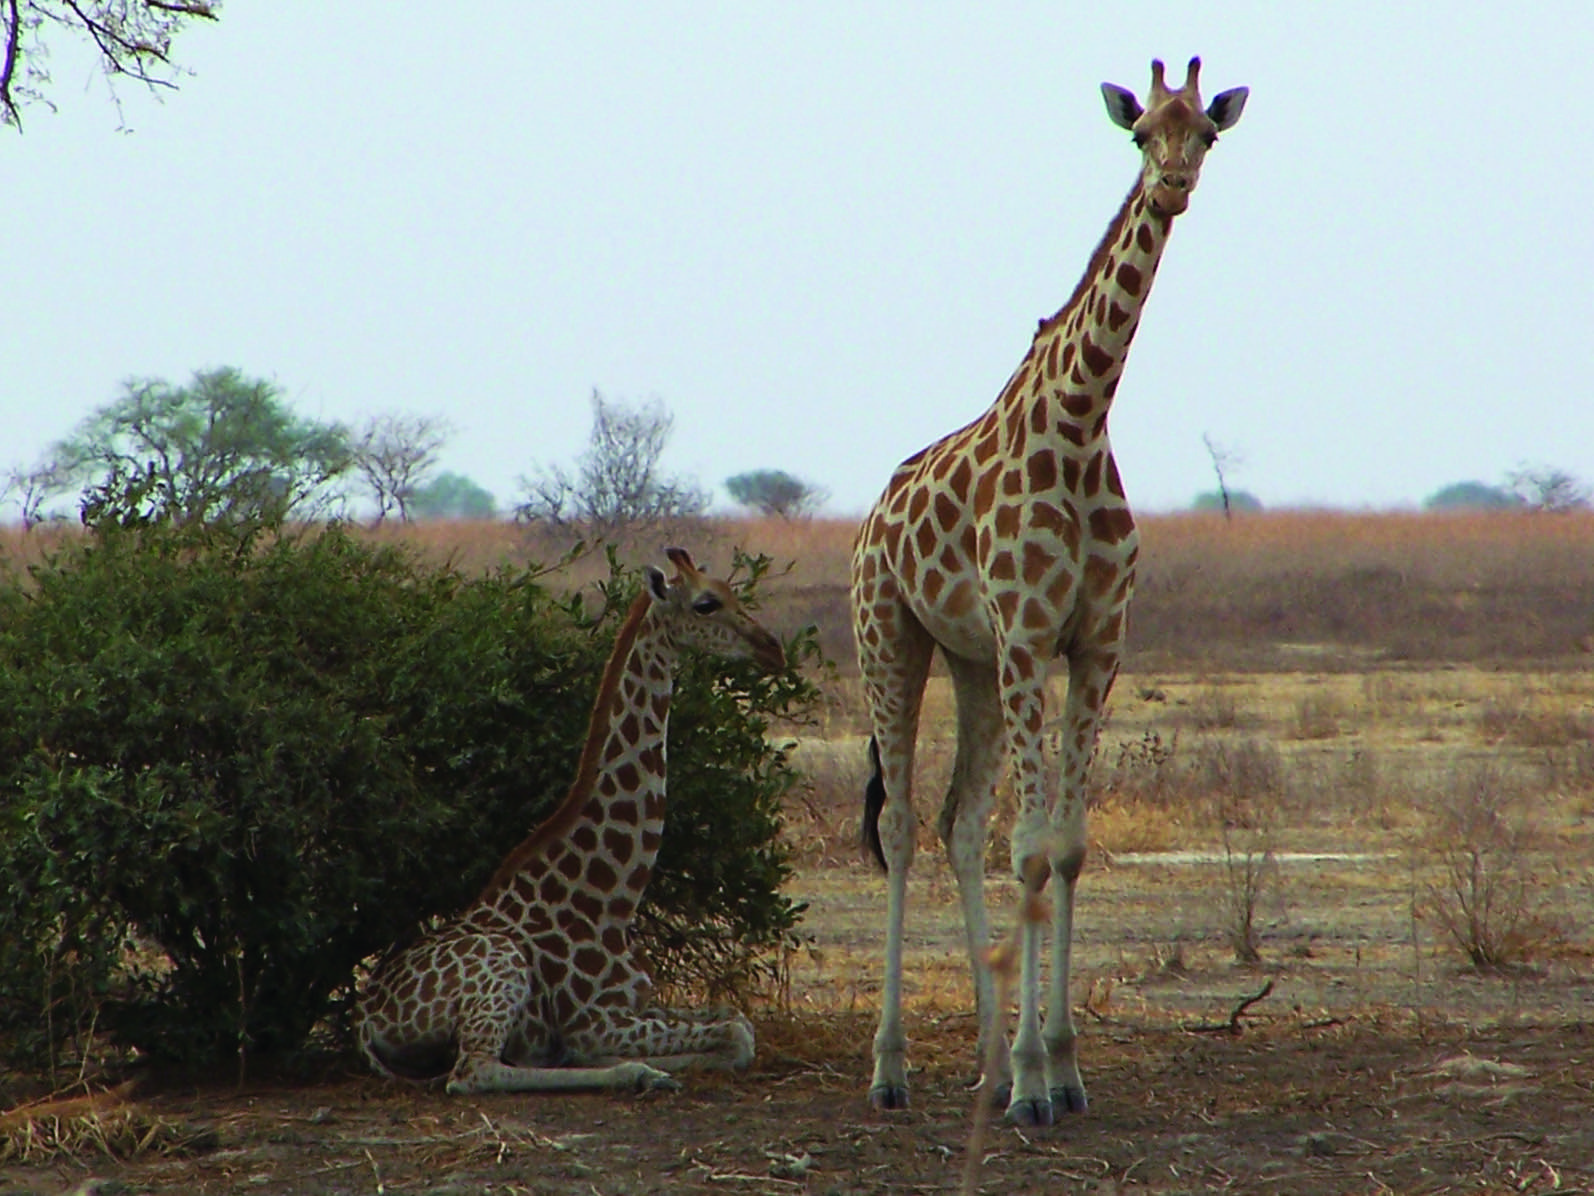 Camaroon's Waza National Park was named a UNESCO Biospere Reserve due to its amazing biodiversity, including these Kordofan giraffes. Image: ©M.Schoe with thanks to Giraffe Conservation Foundation.